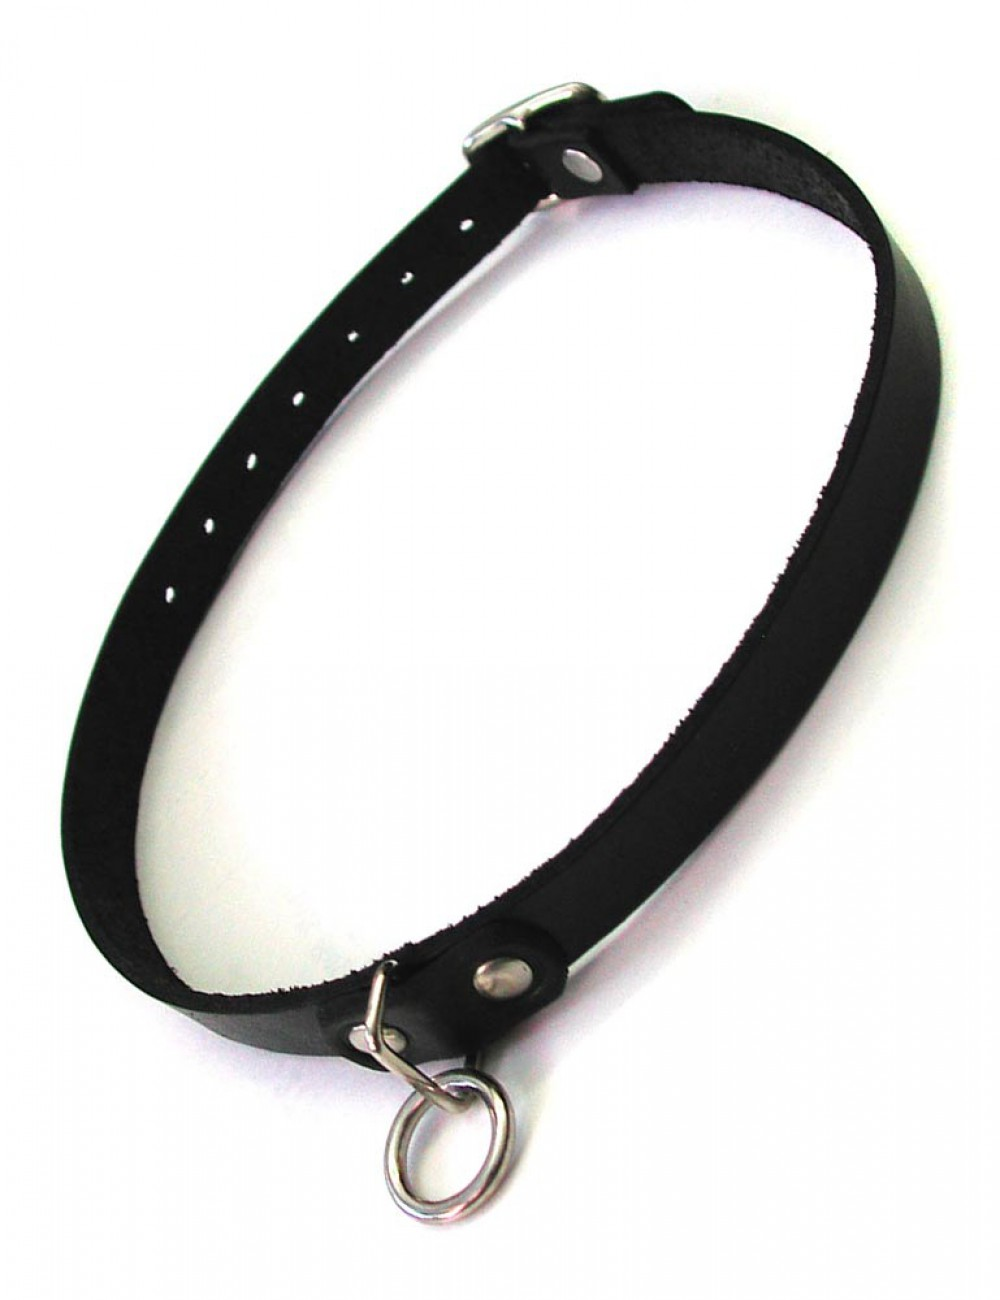 The Leather Choker With O-Ring